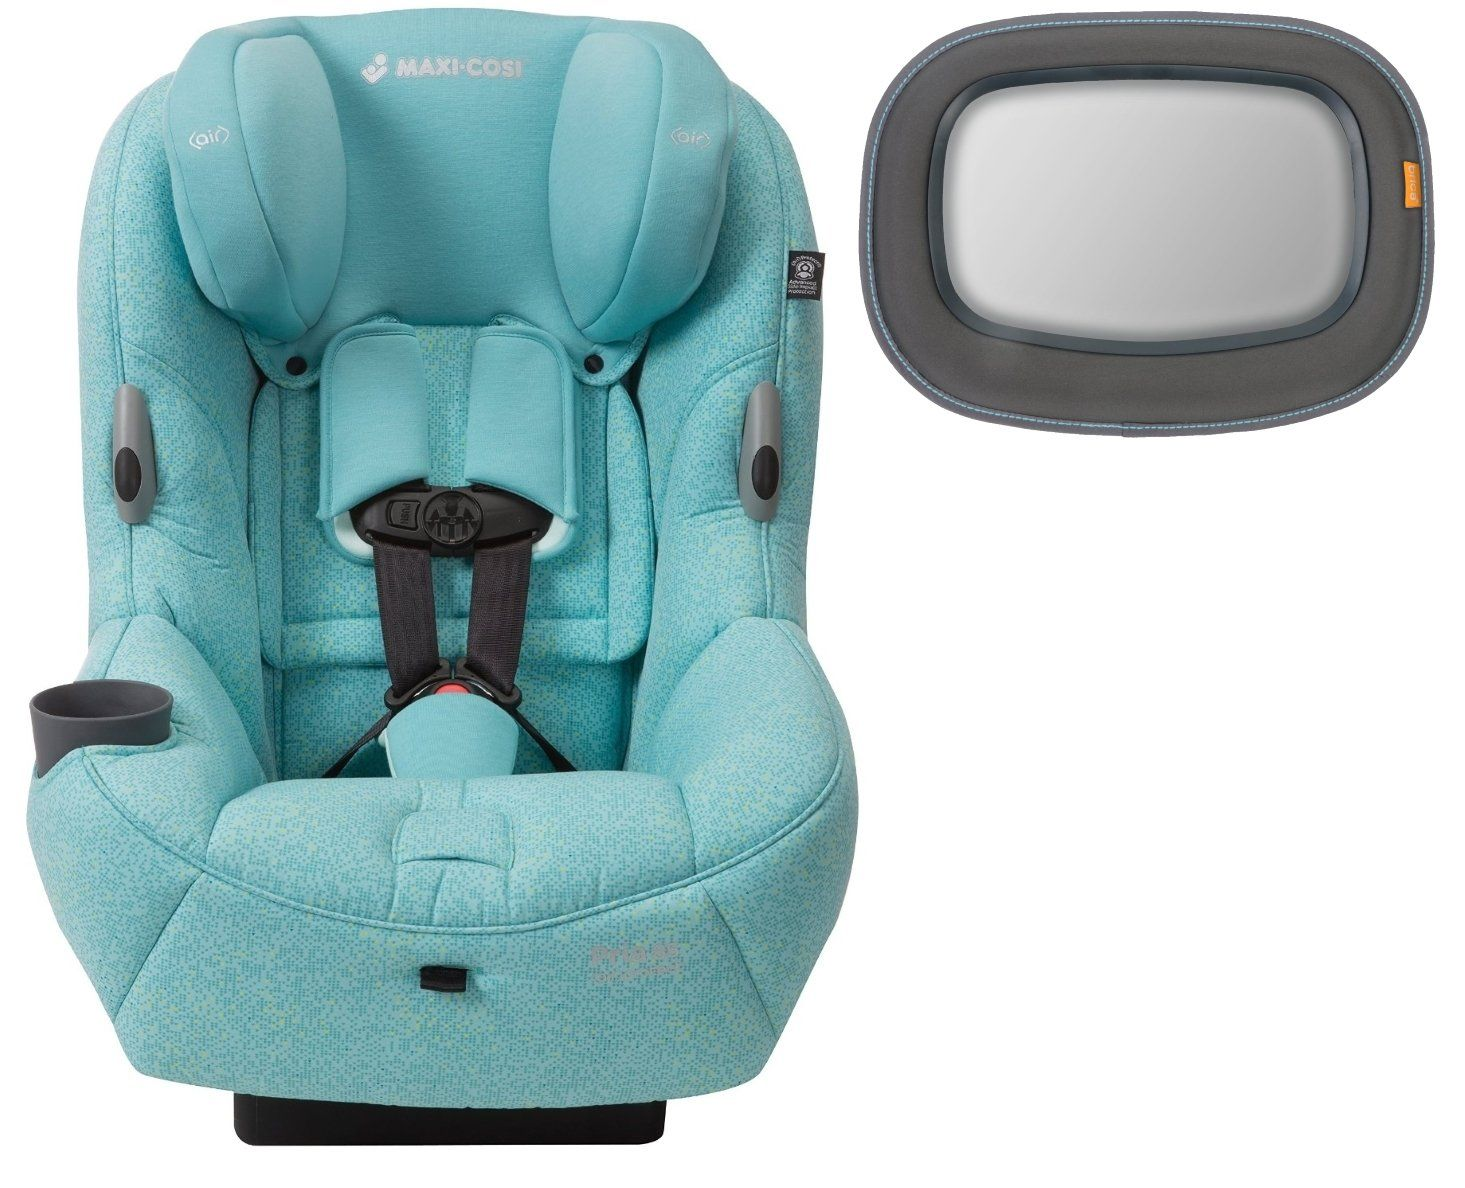 Maxi Cosi Spiegel : Maxi cosi pria 85 special edition convertible car seat with in sight